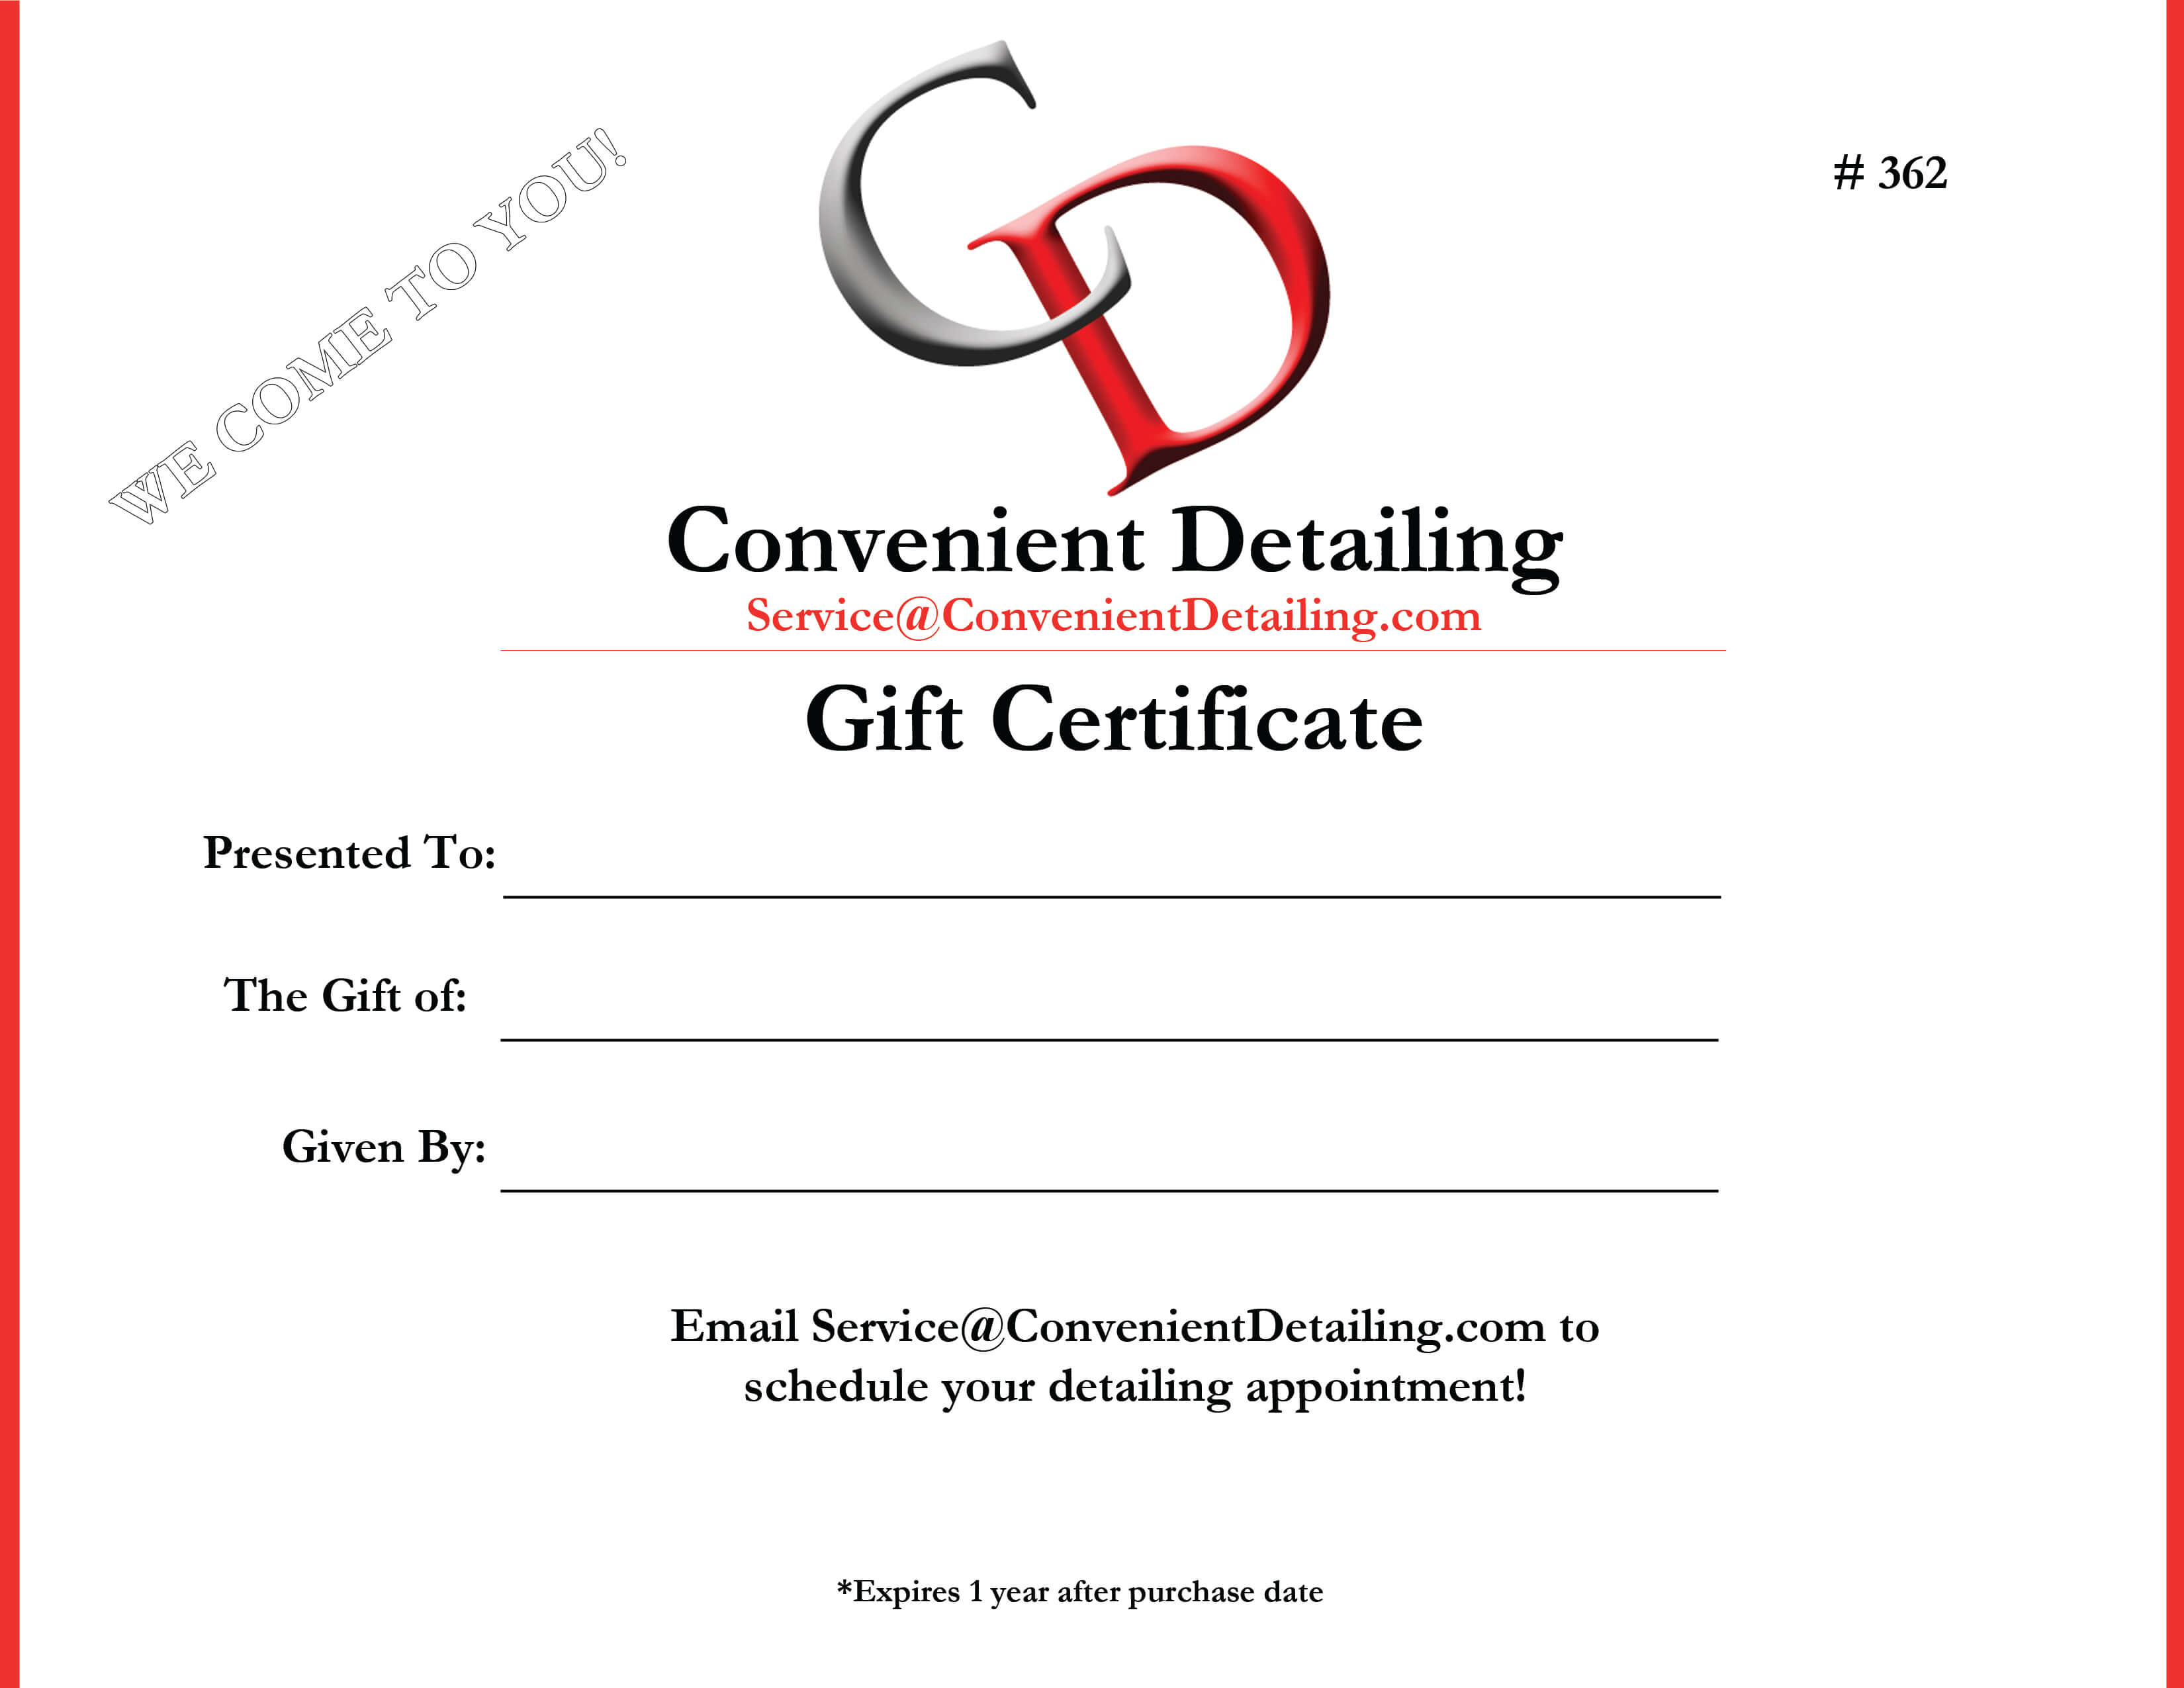 Auto Detailing Gift Certificate NJ